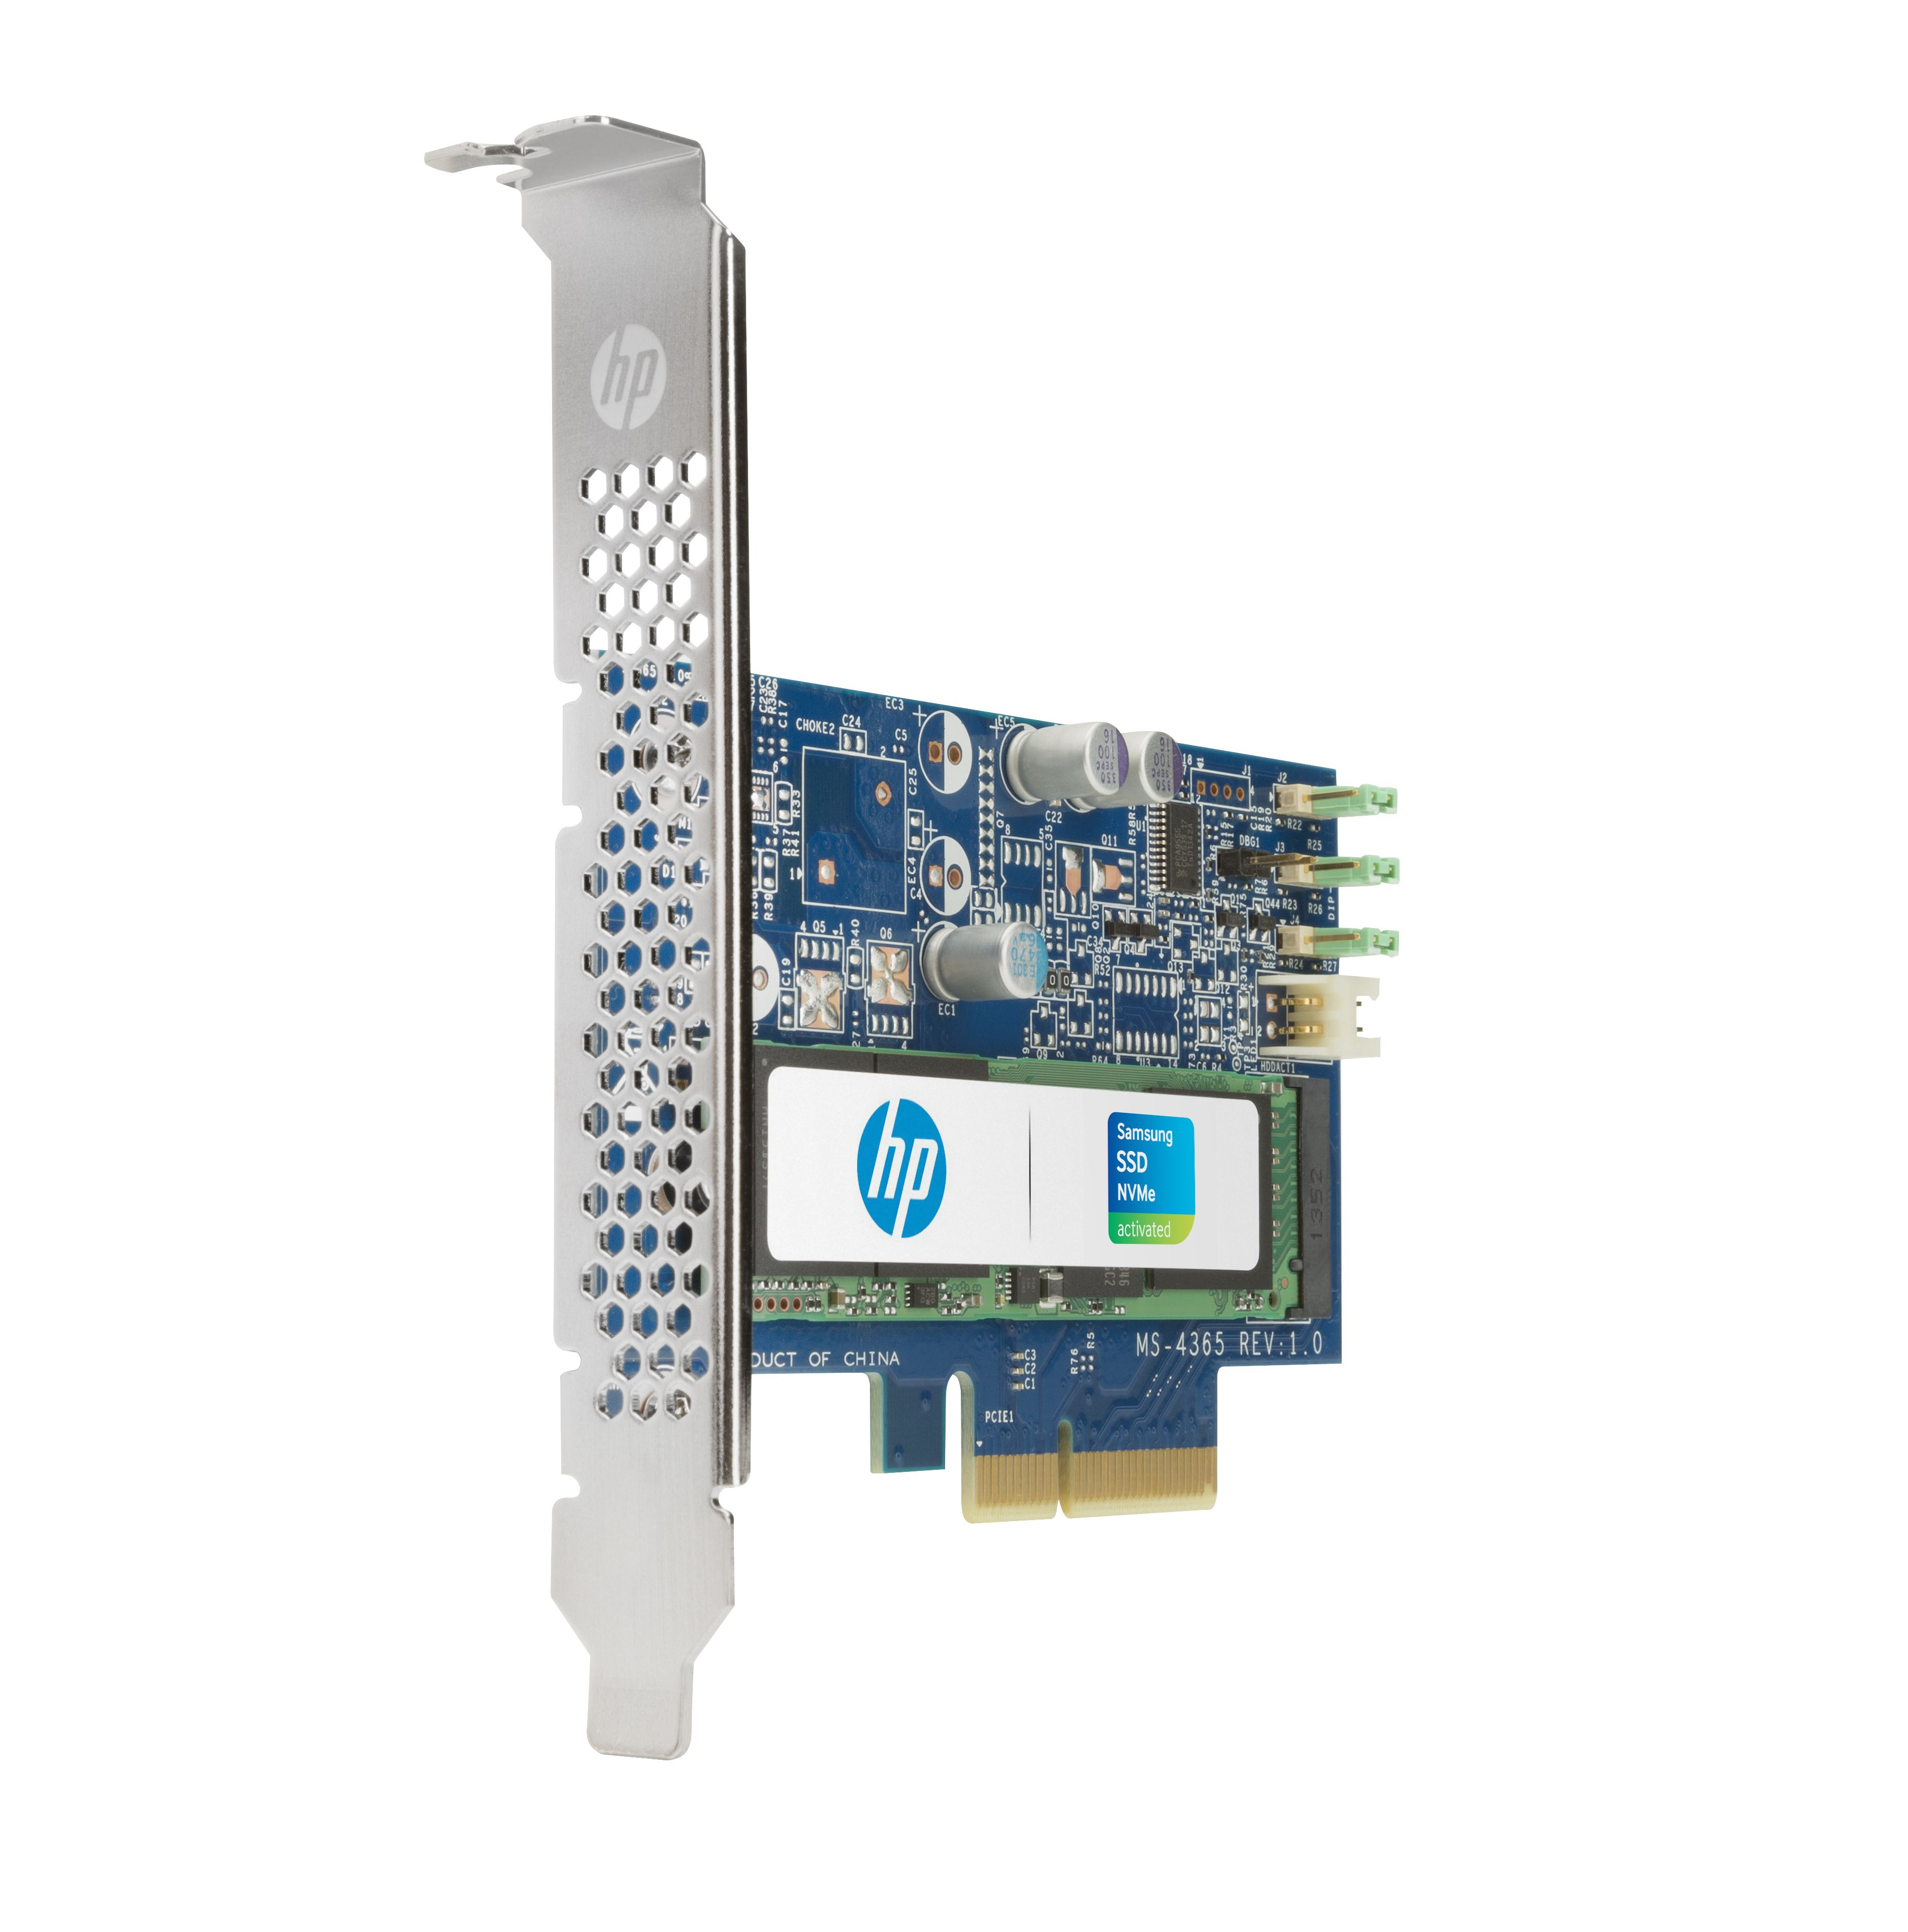 HP Turbo Drive G2 - Solid State Drive - 256 GB - intern - M.2 - PCI Express - for EliteDesk 705 G3, 800 G2; EliteOne 800 G2; ProDesk 490 G3, 600 G2; Workstation Z440, Z840 (T7W25AA)